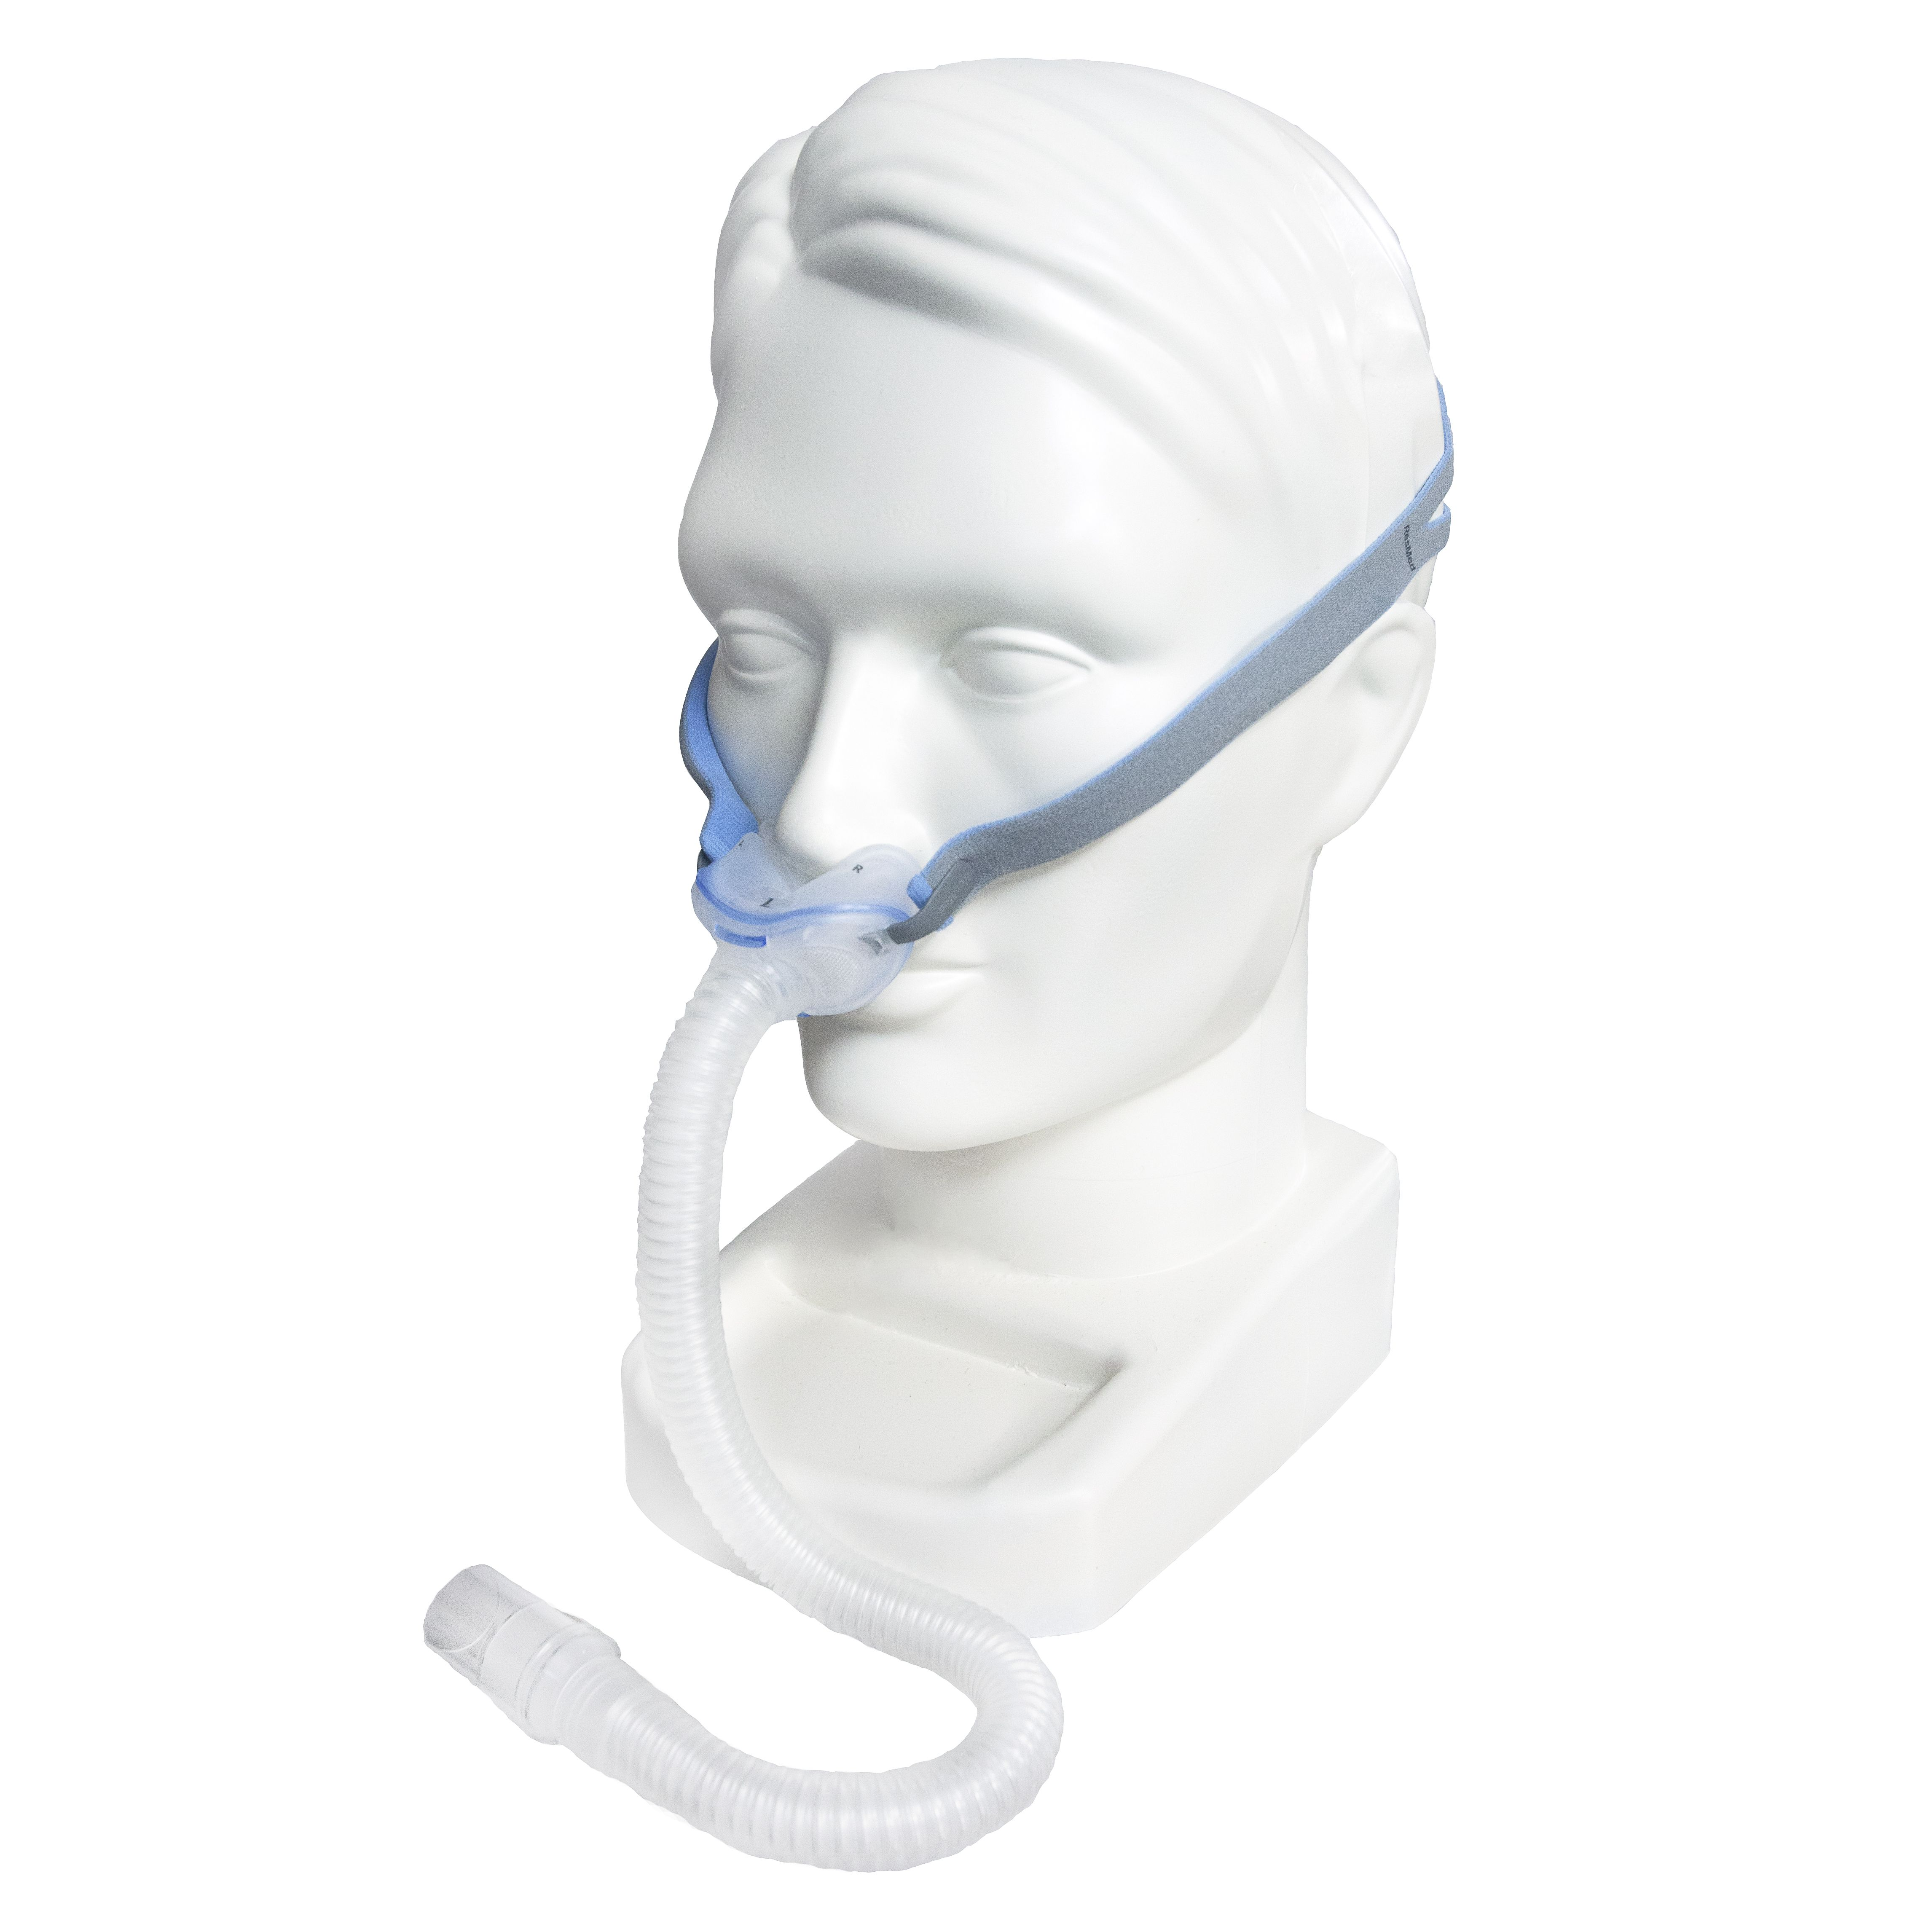 Resmed Airfit P10 Nasal Pillow Cpap Mask With Headgear With